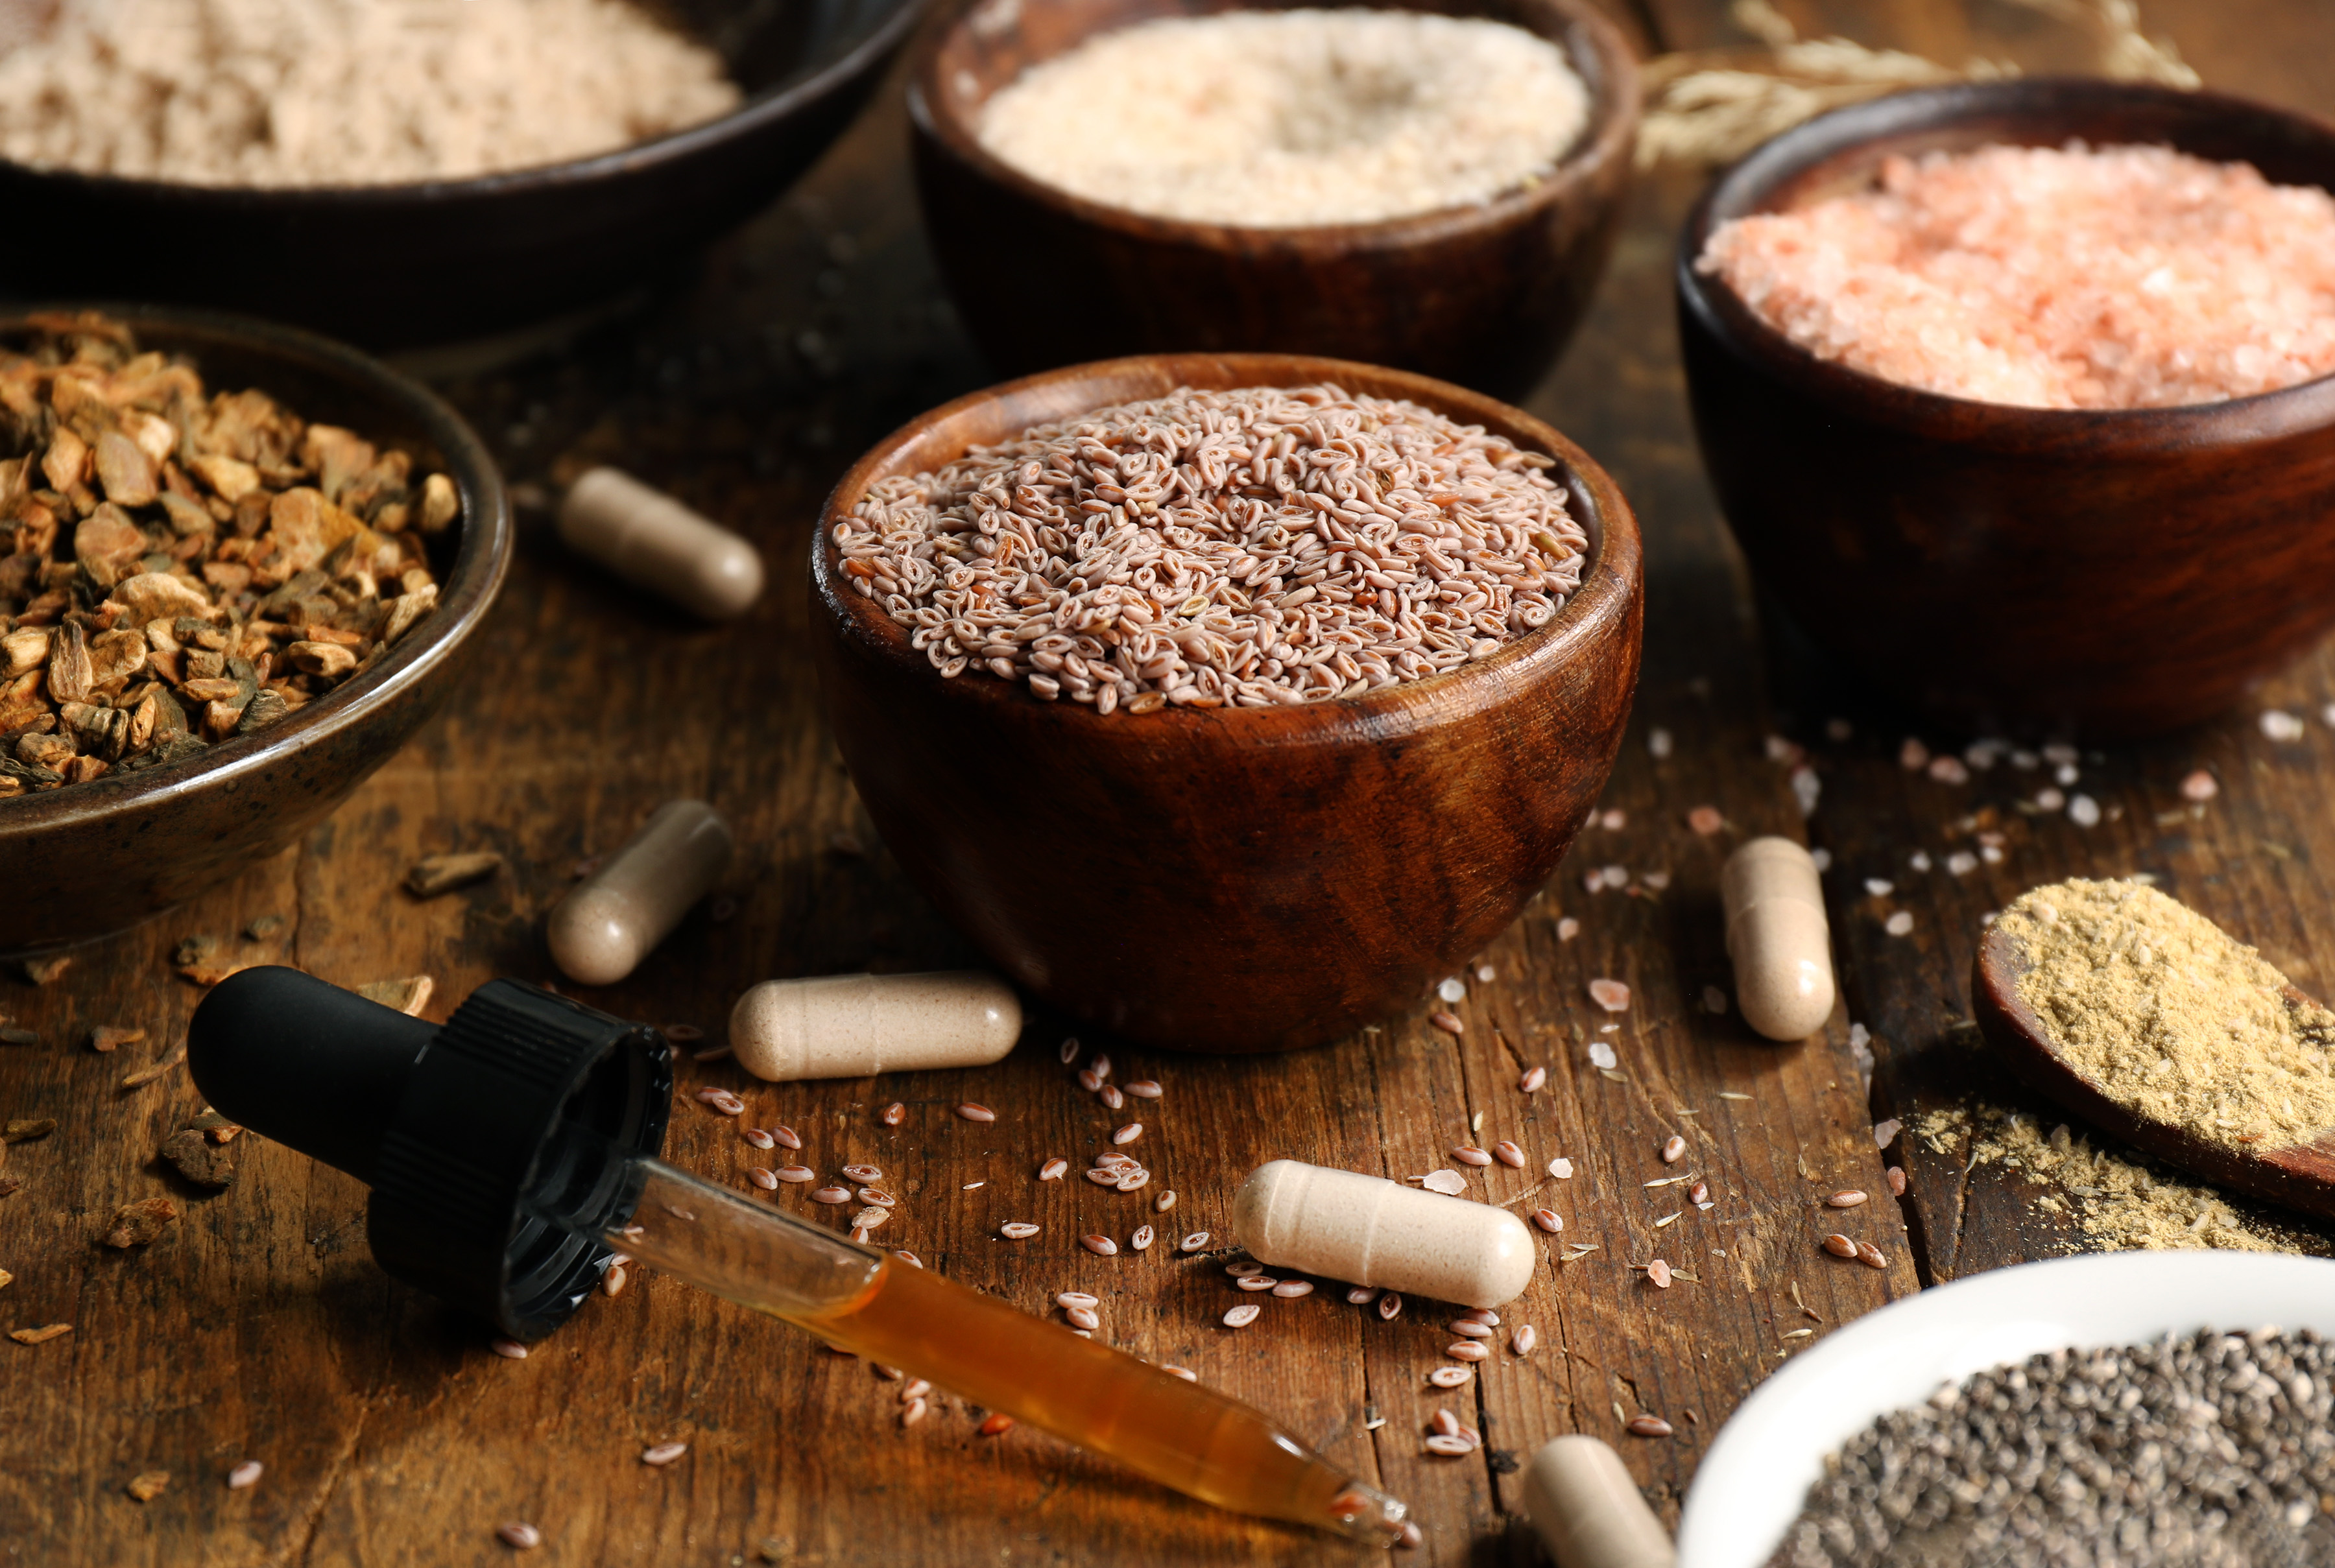 A variety of herbs used for digestion and gentle laxative properties include slippery elm bark, cascara sagrada bark, psyllium seeds, Himalayan pink salt, and triphala powder.